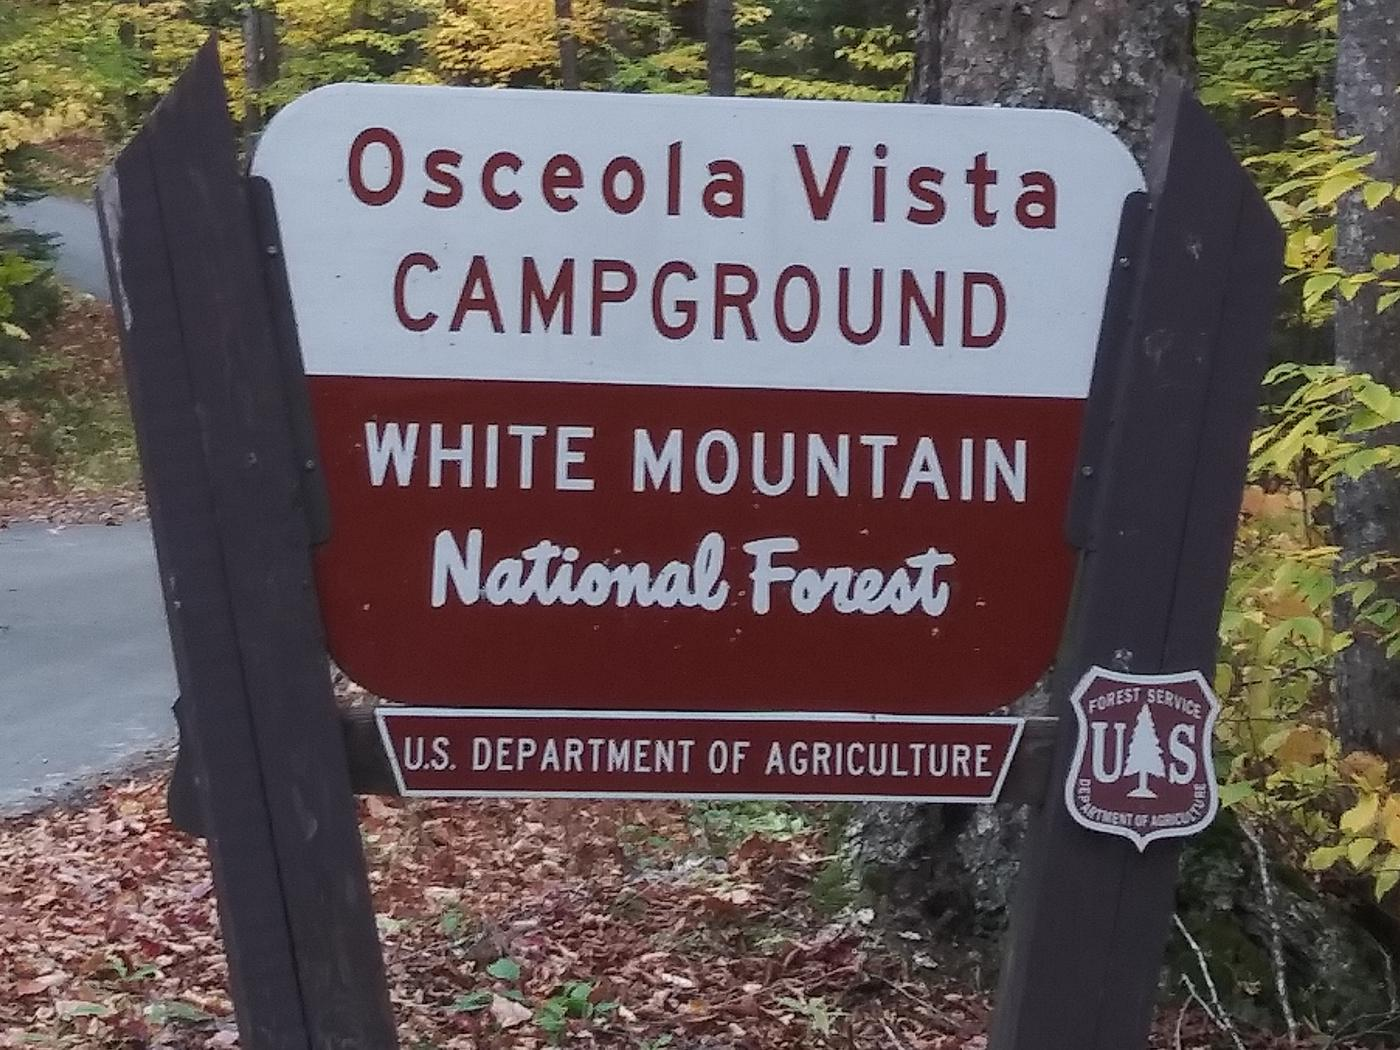 OV SignOsceola Vista Campground